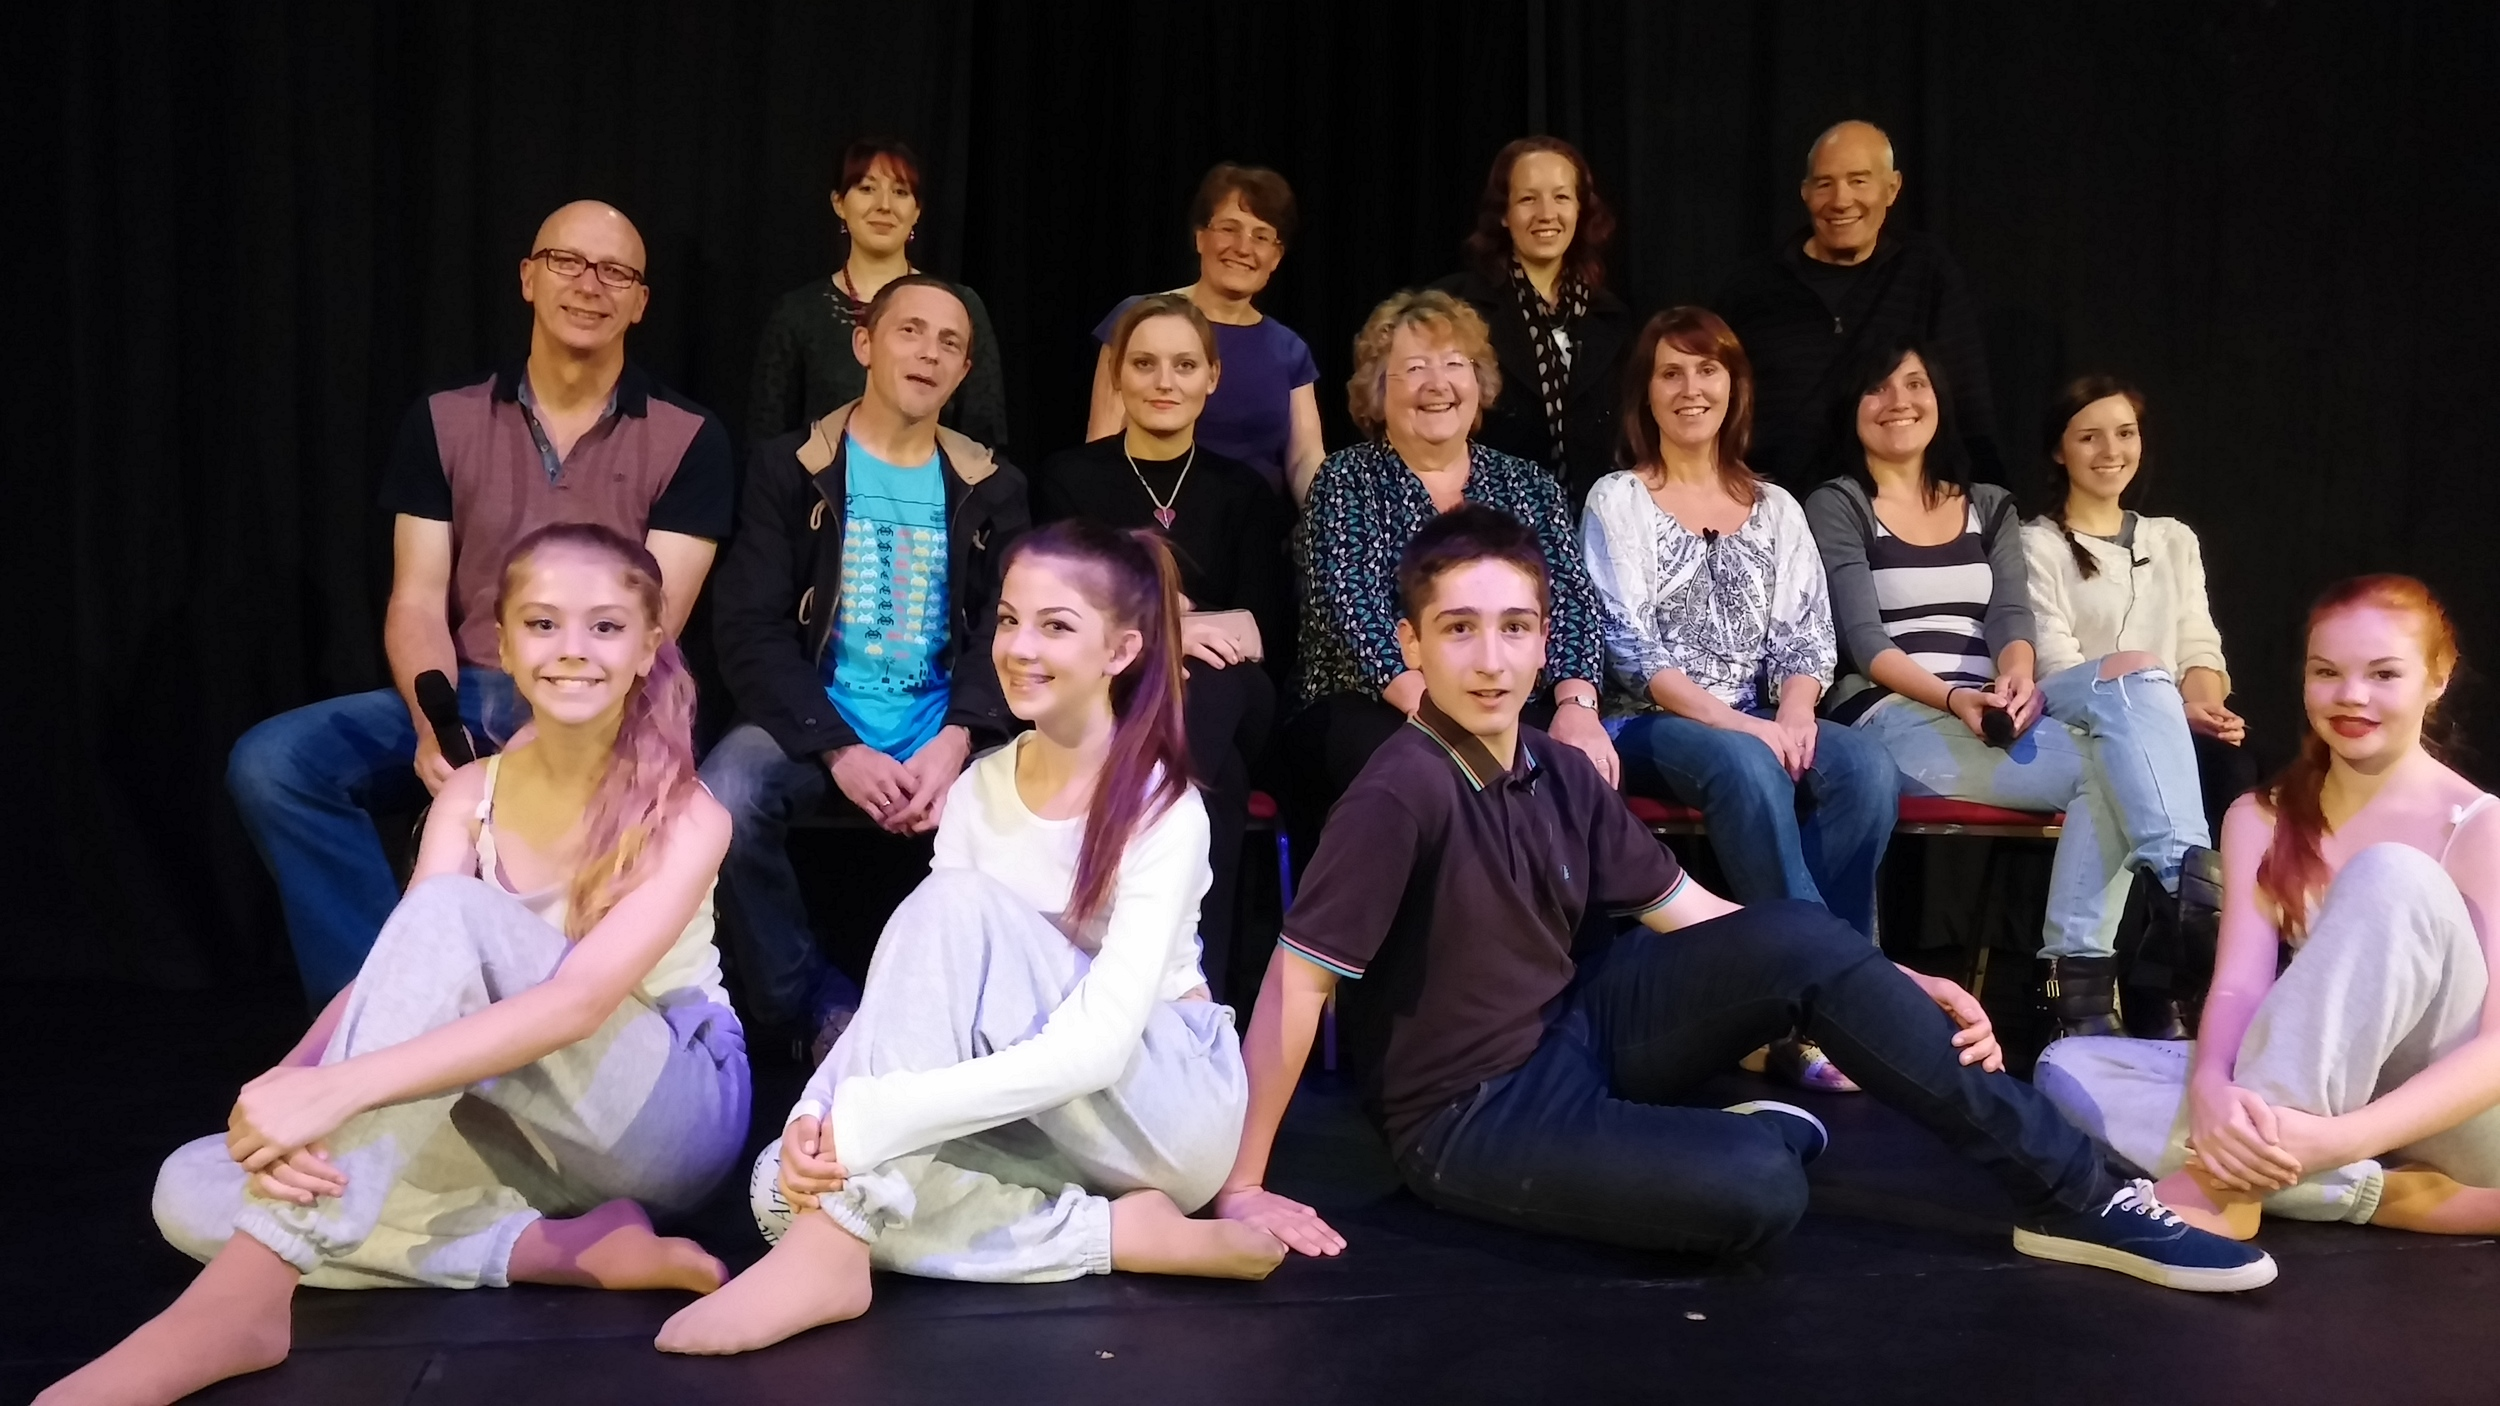 The brilliant cast and dancers, joined by a member of the back stage team,who made Star Prize such an amazing experience!